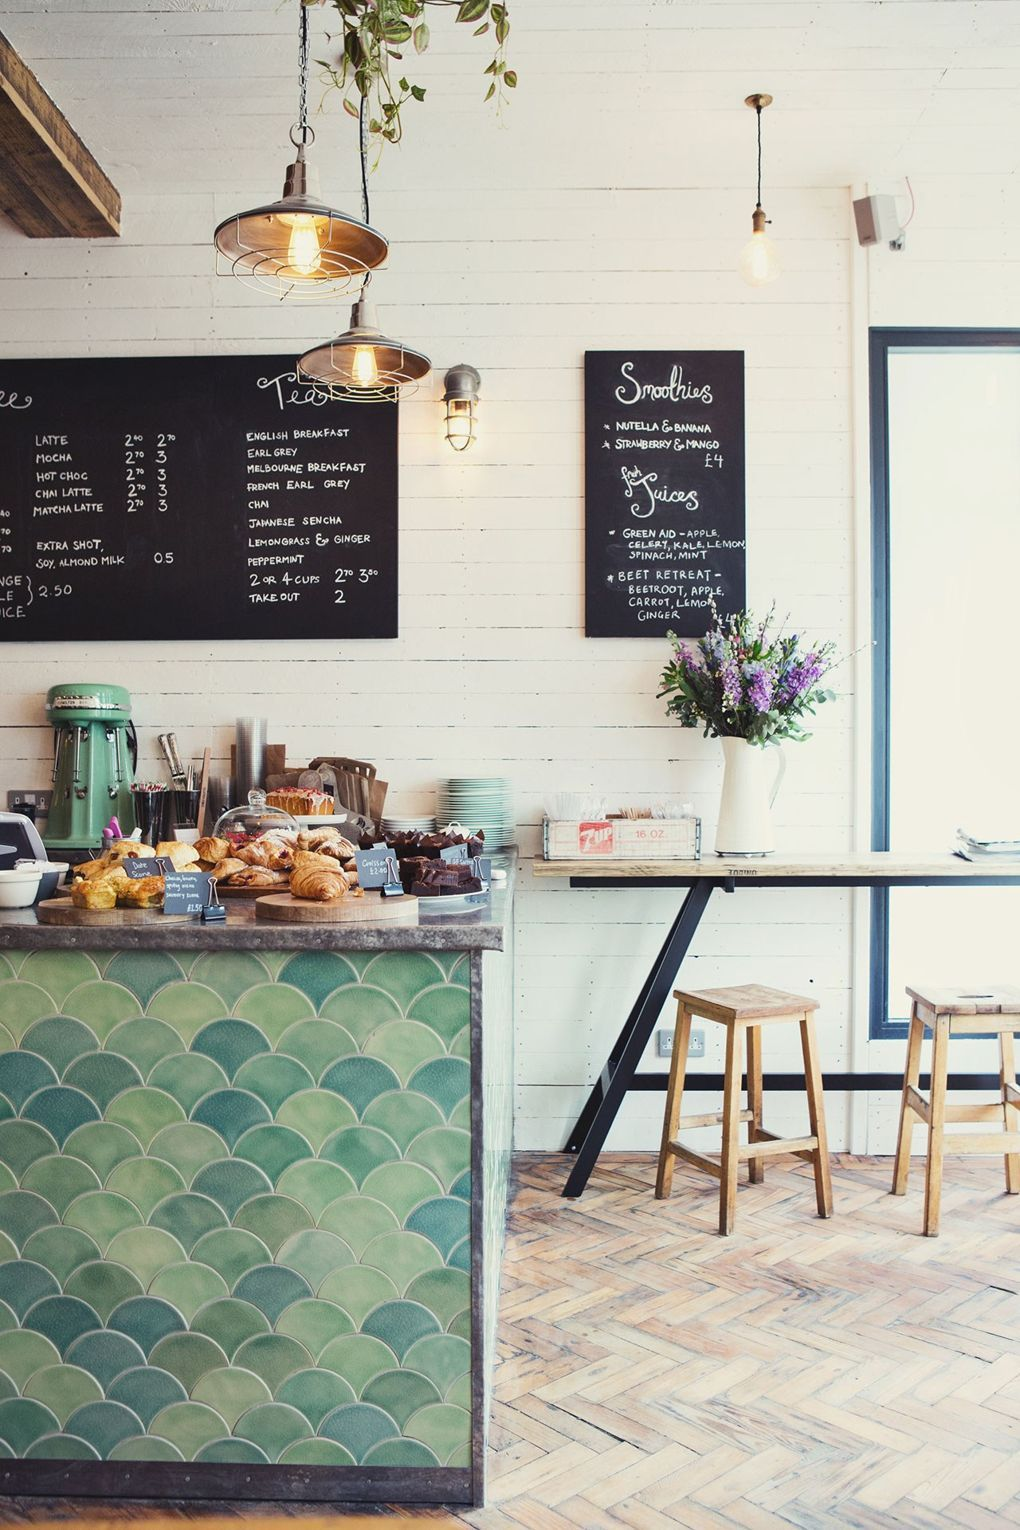 The best coffee shops in London | Florence, Cafes and Coffee